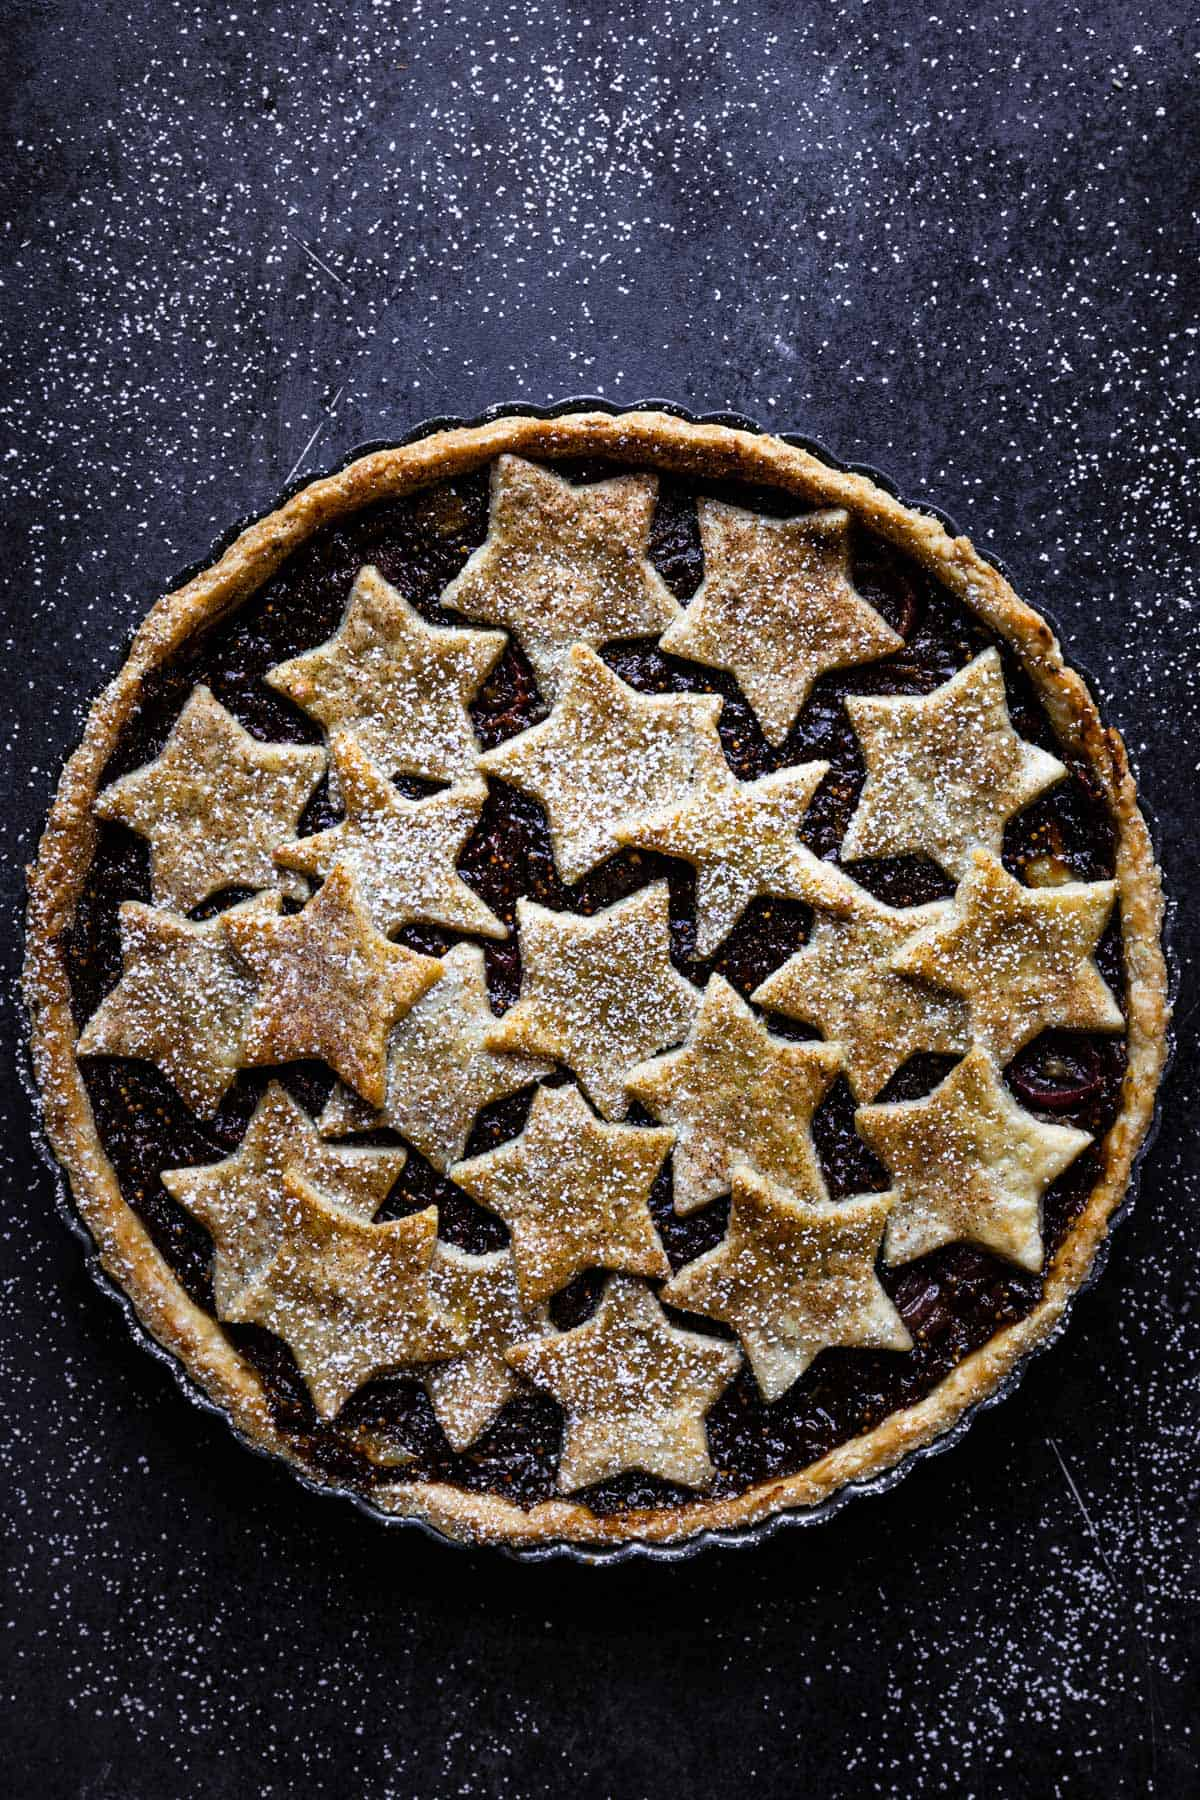 Dried and fresh fruit pie with nostalgic flavors.